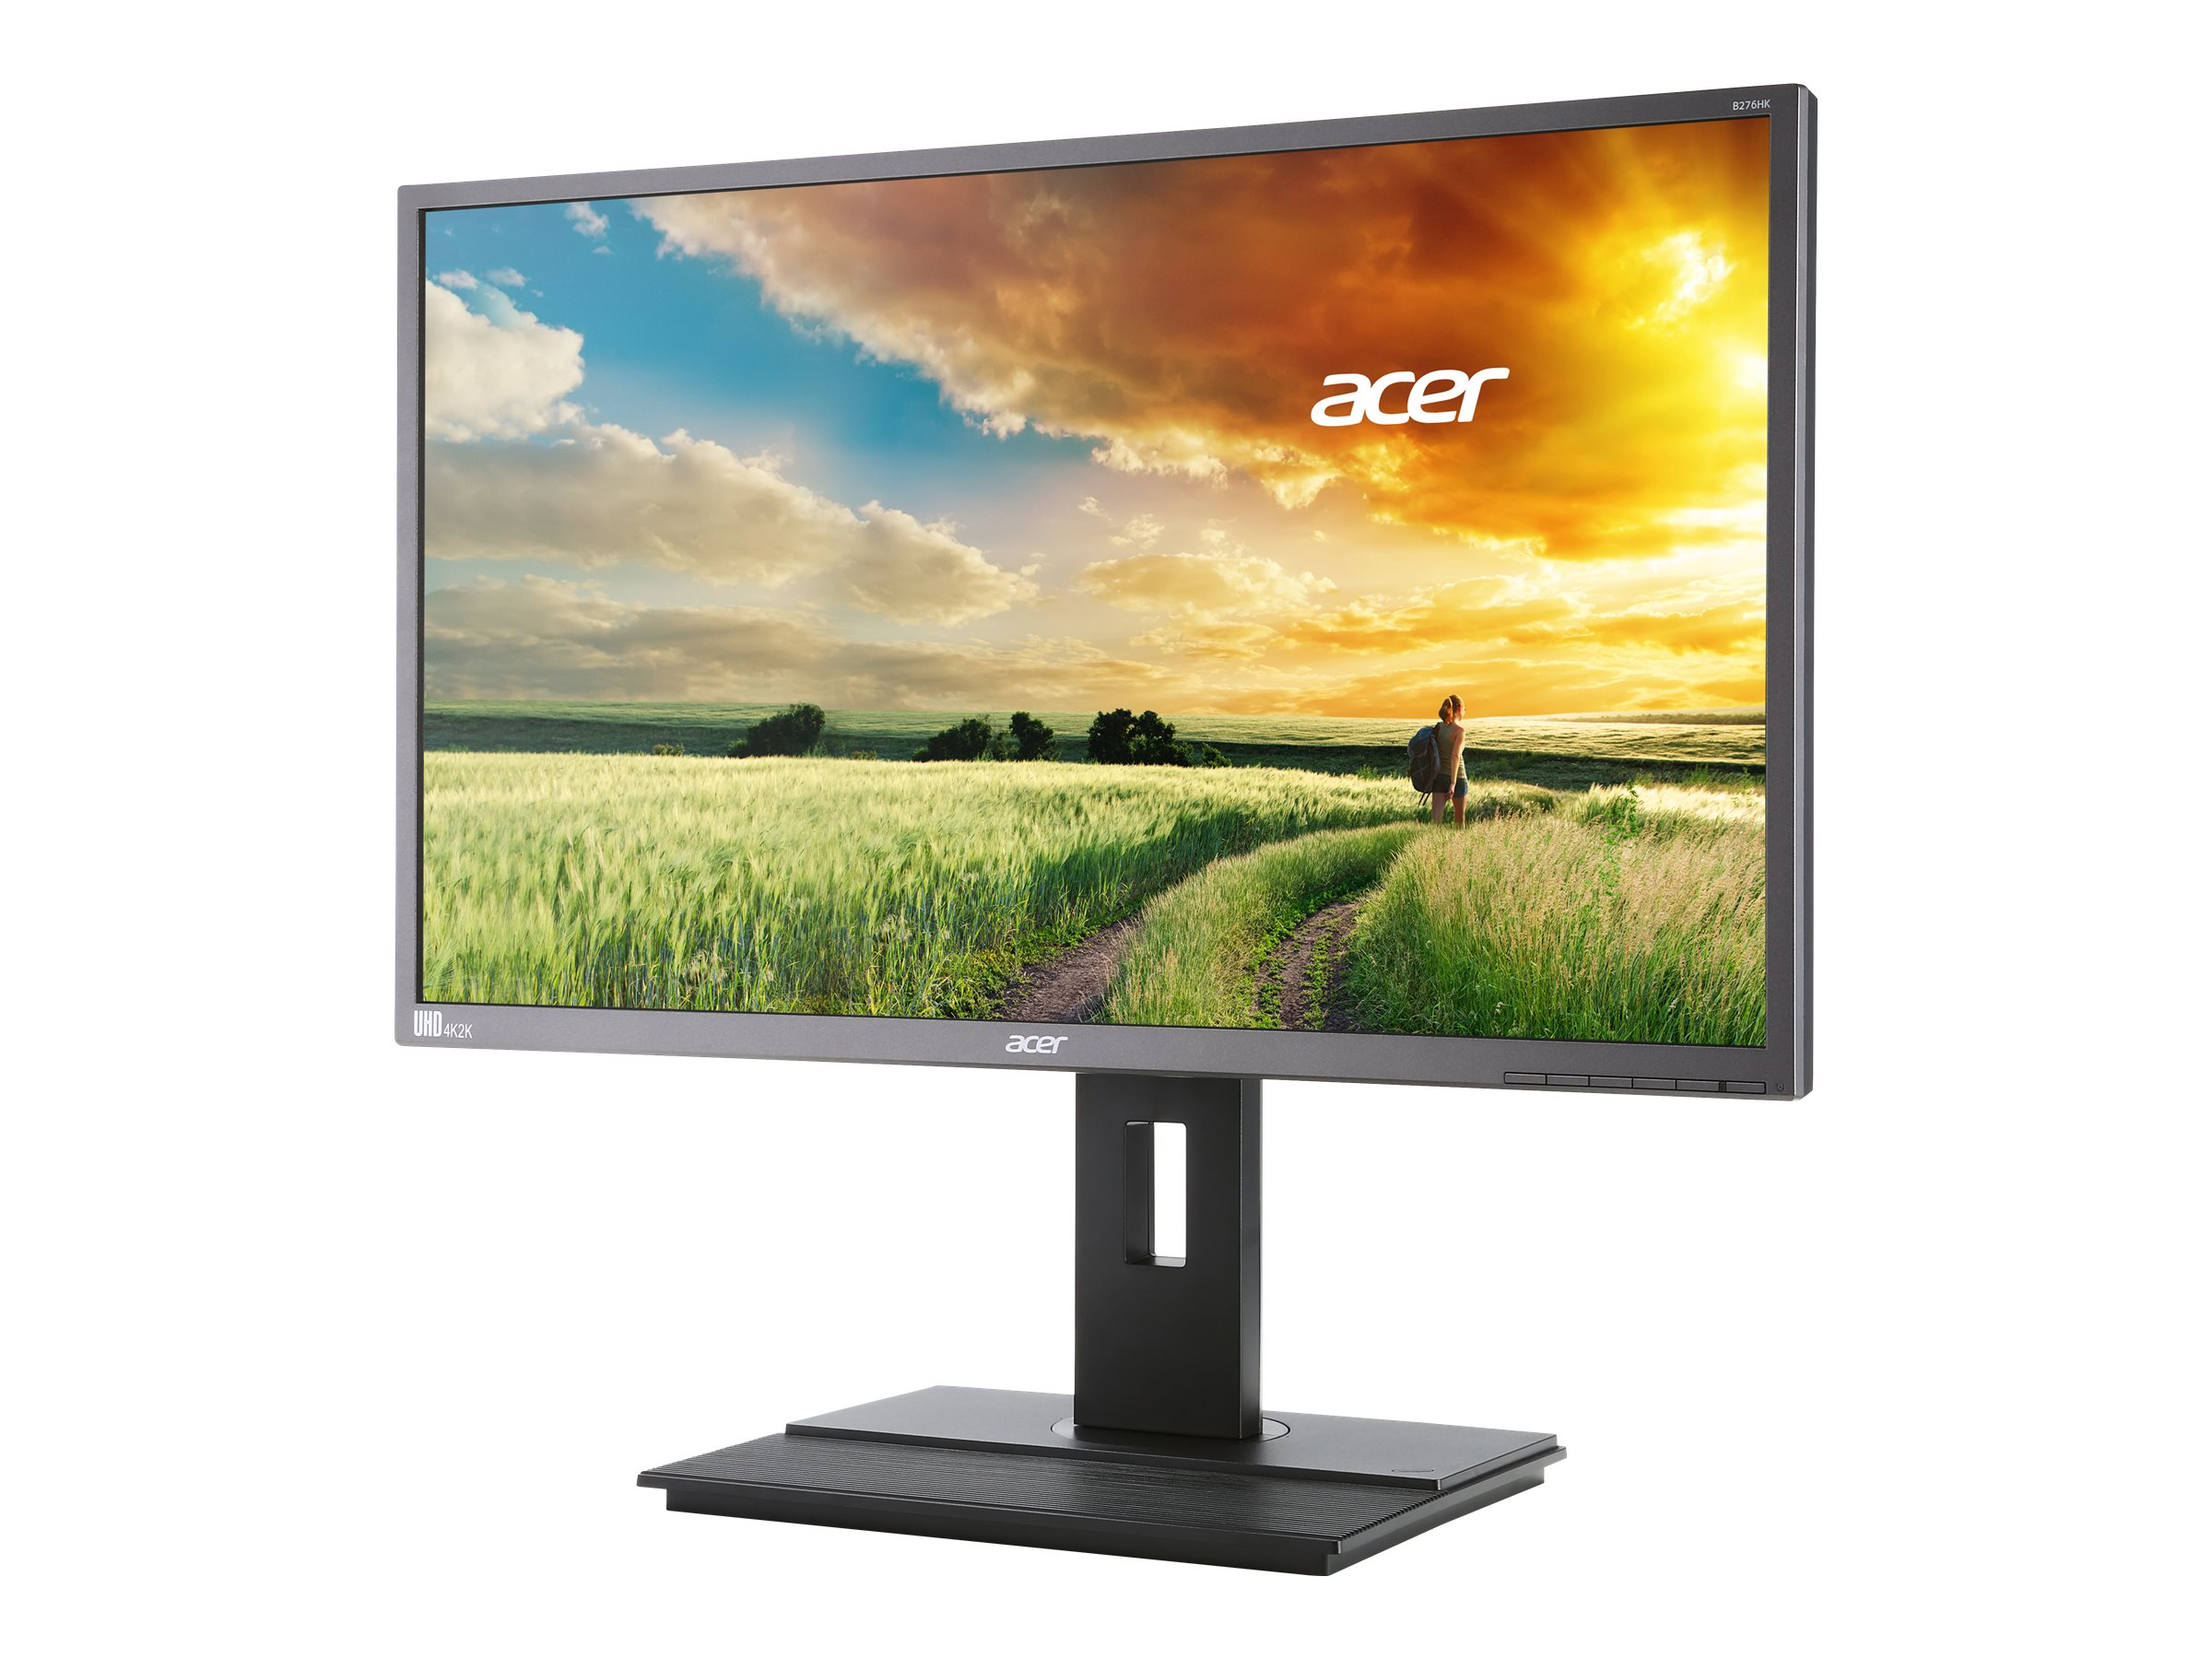 Acer 27 B276HK 4K Ultra HD LED-LCD Monitor, Black, B276HKYMJDPPRZ